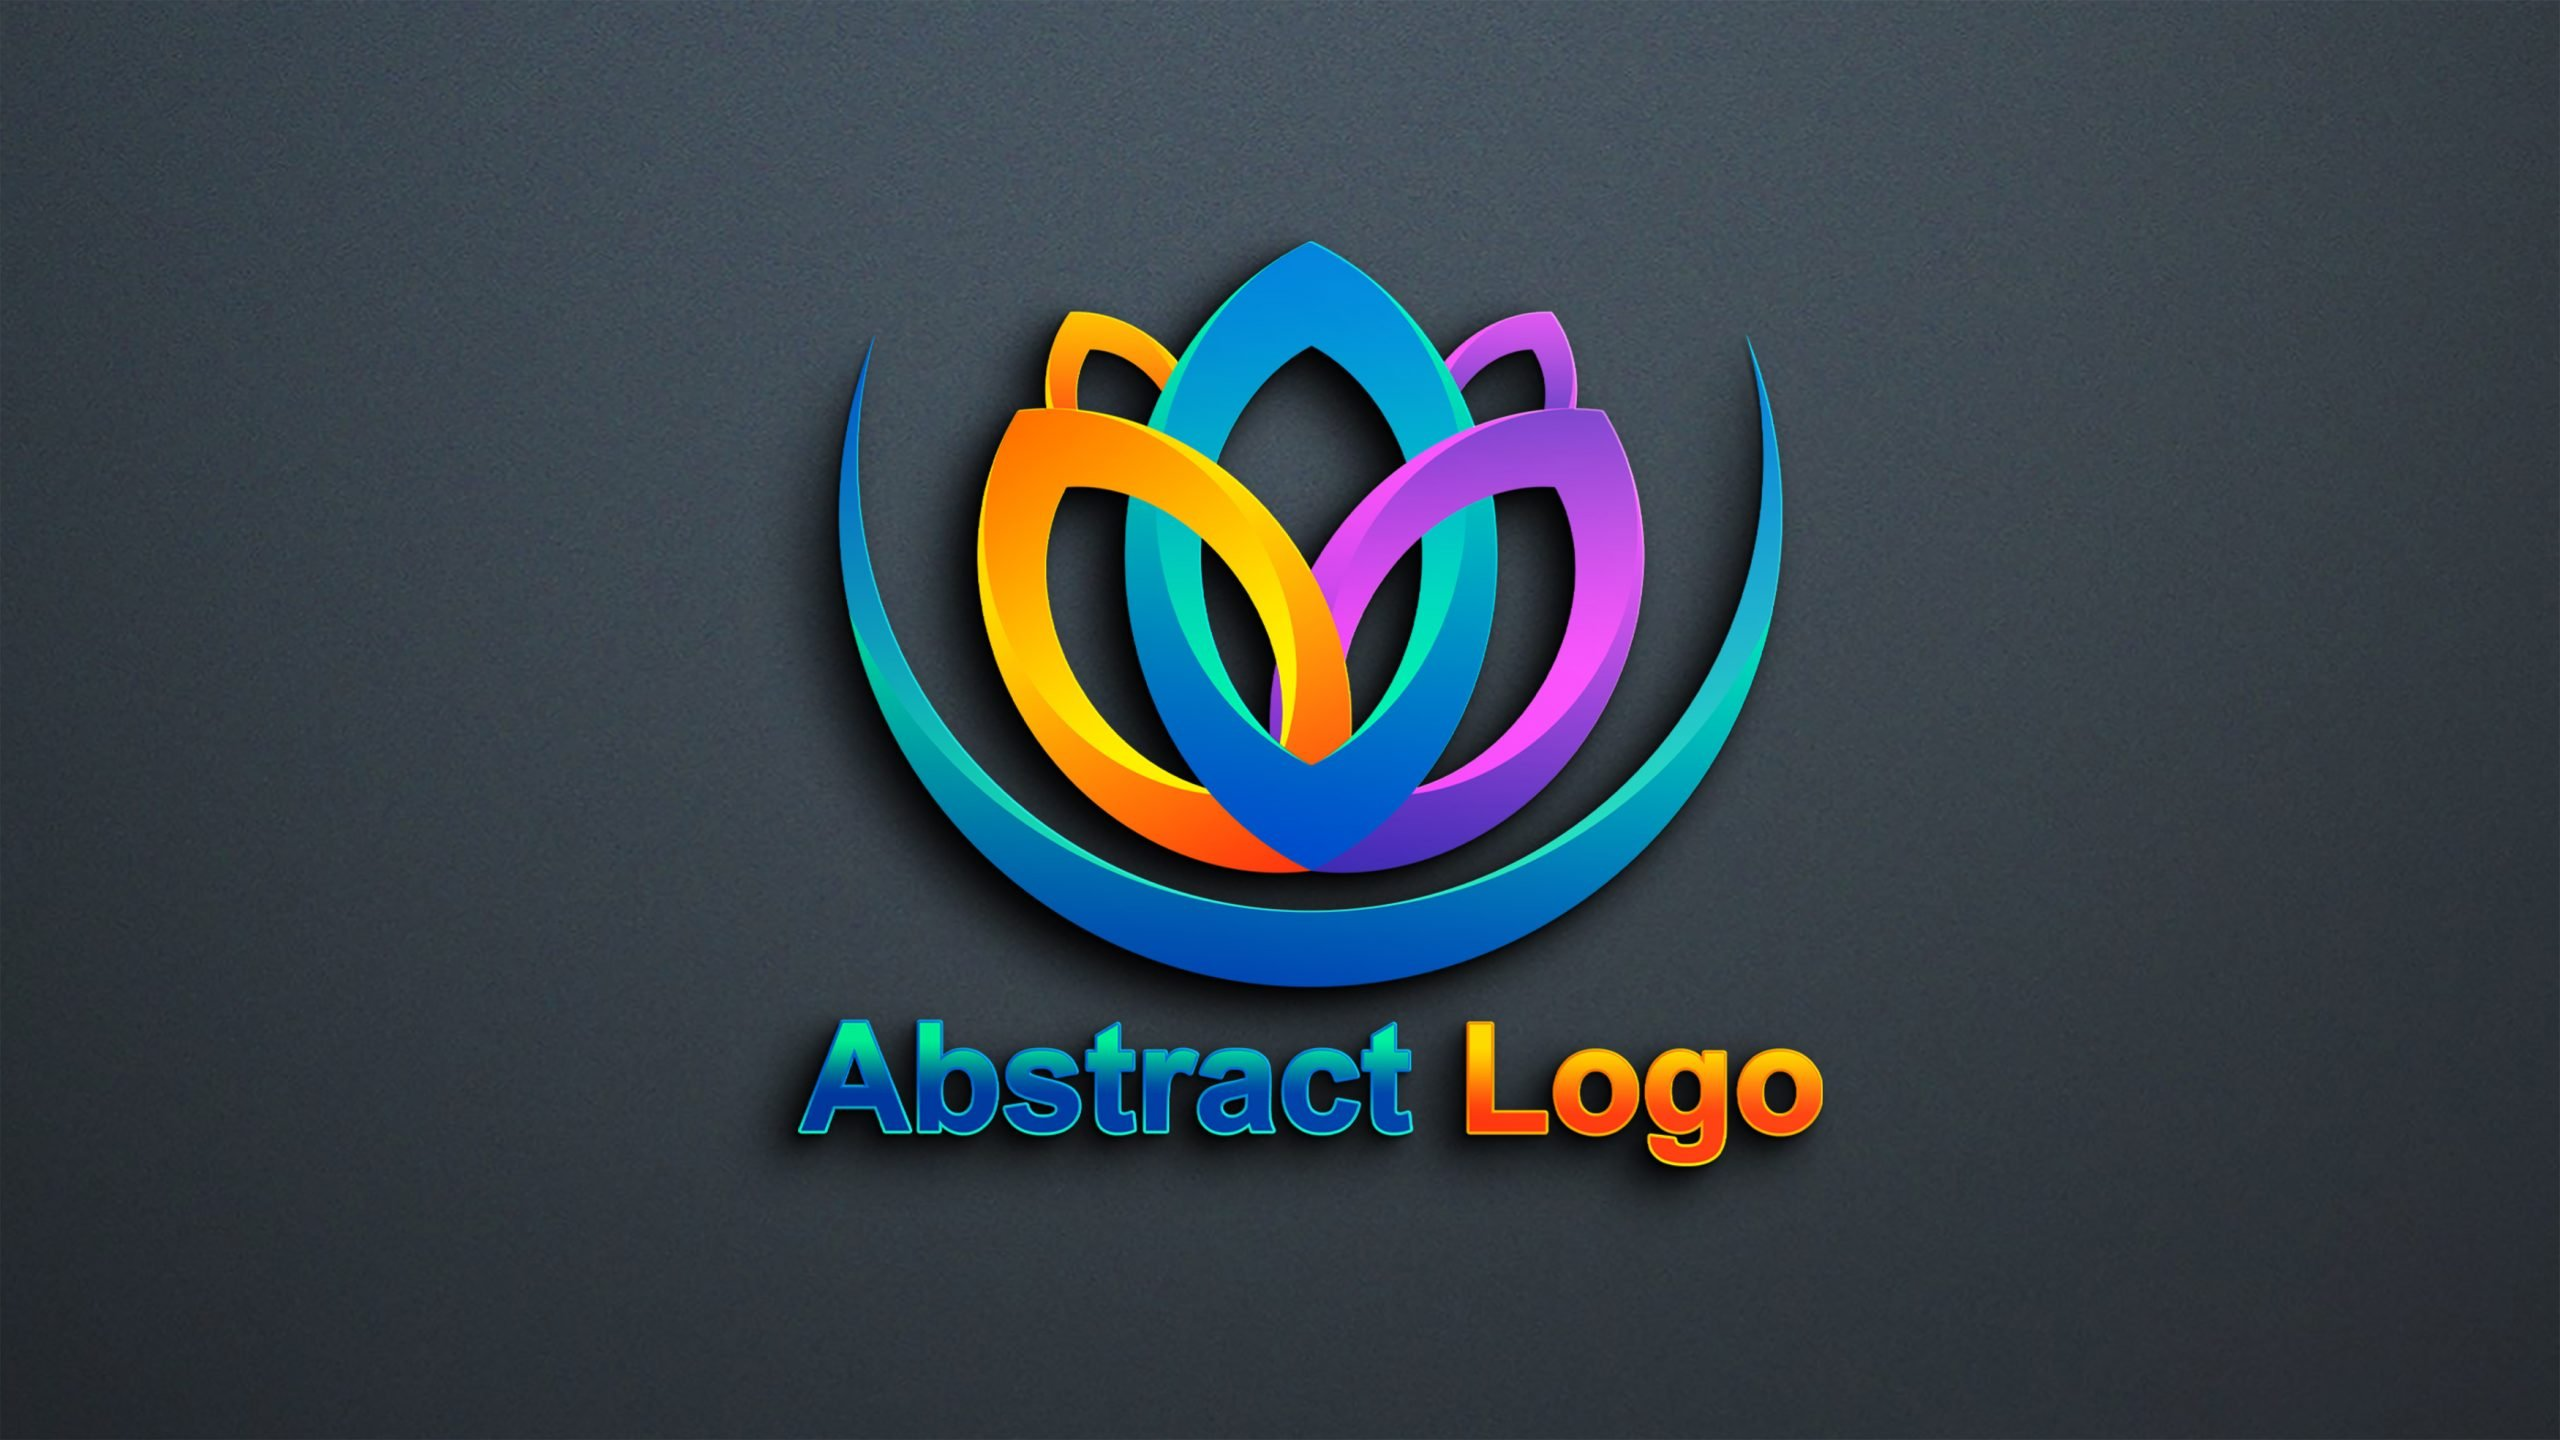 Free Download Editable Abstract Logo Design